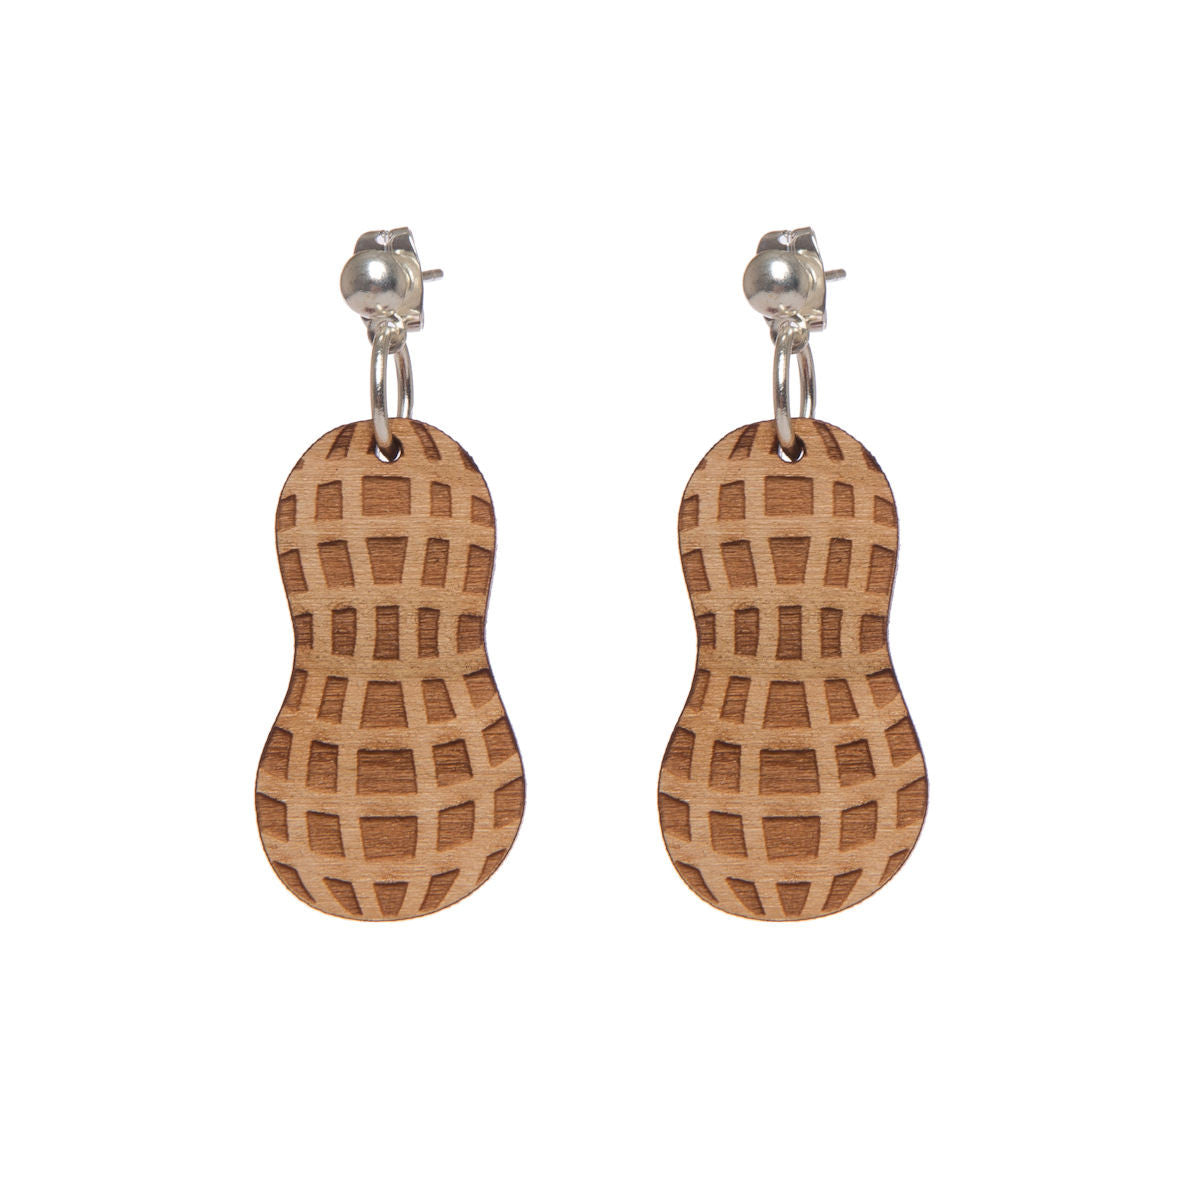 Sugar & Vice Peanut Earrings